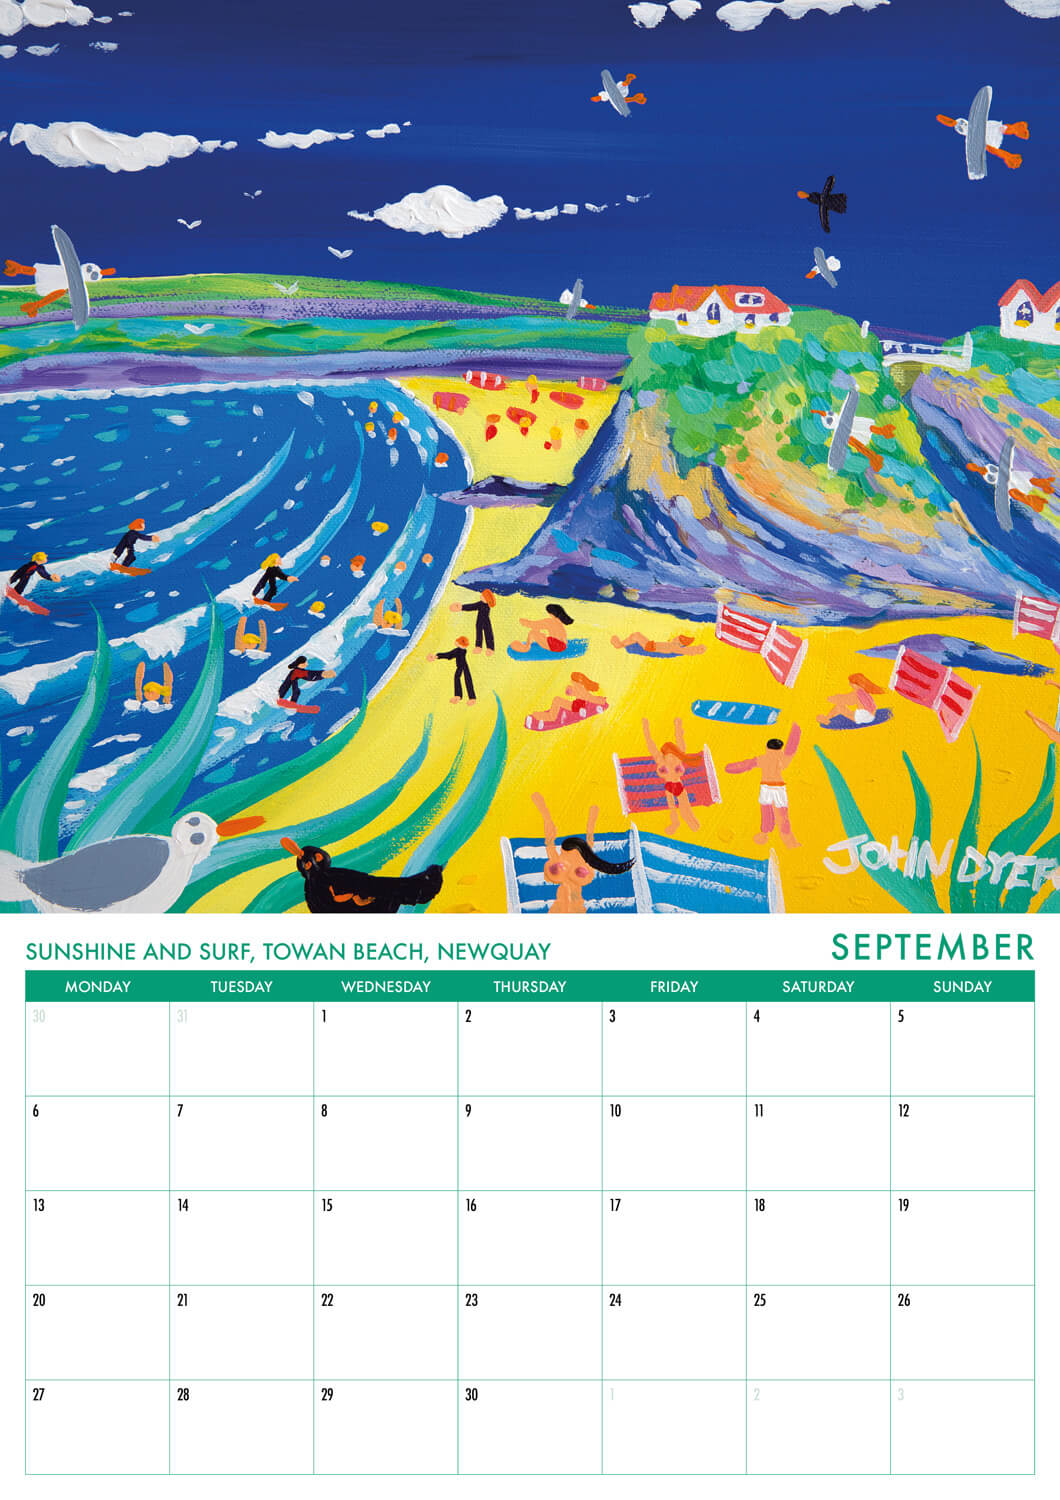 2021 Calendar of Cornwall by Cornish artist John Dyer